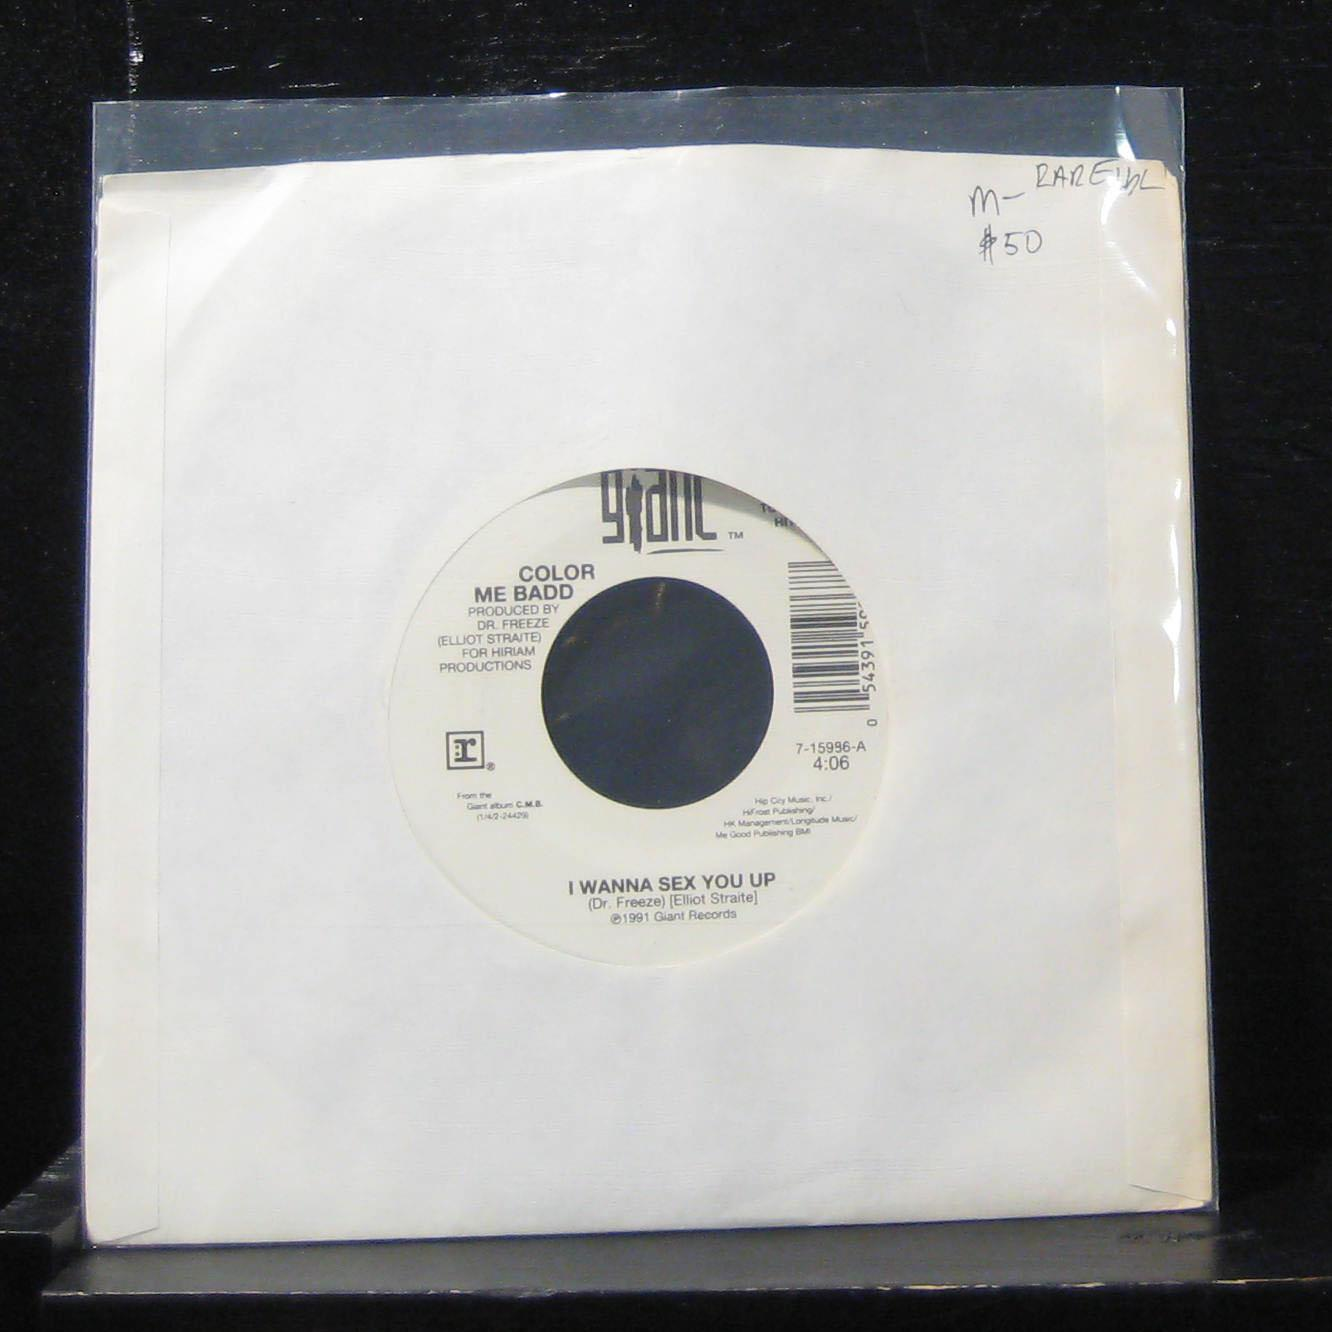 "Color Me Badd - I Wanna Sex You Up / Thinkin Back 7"" Mint- 7-15986 Vinyl 45 Rare"